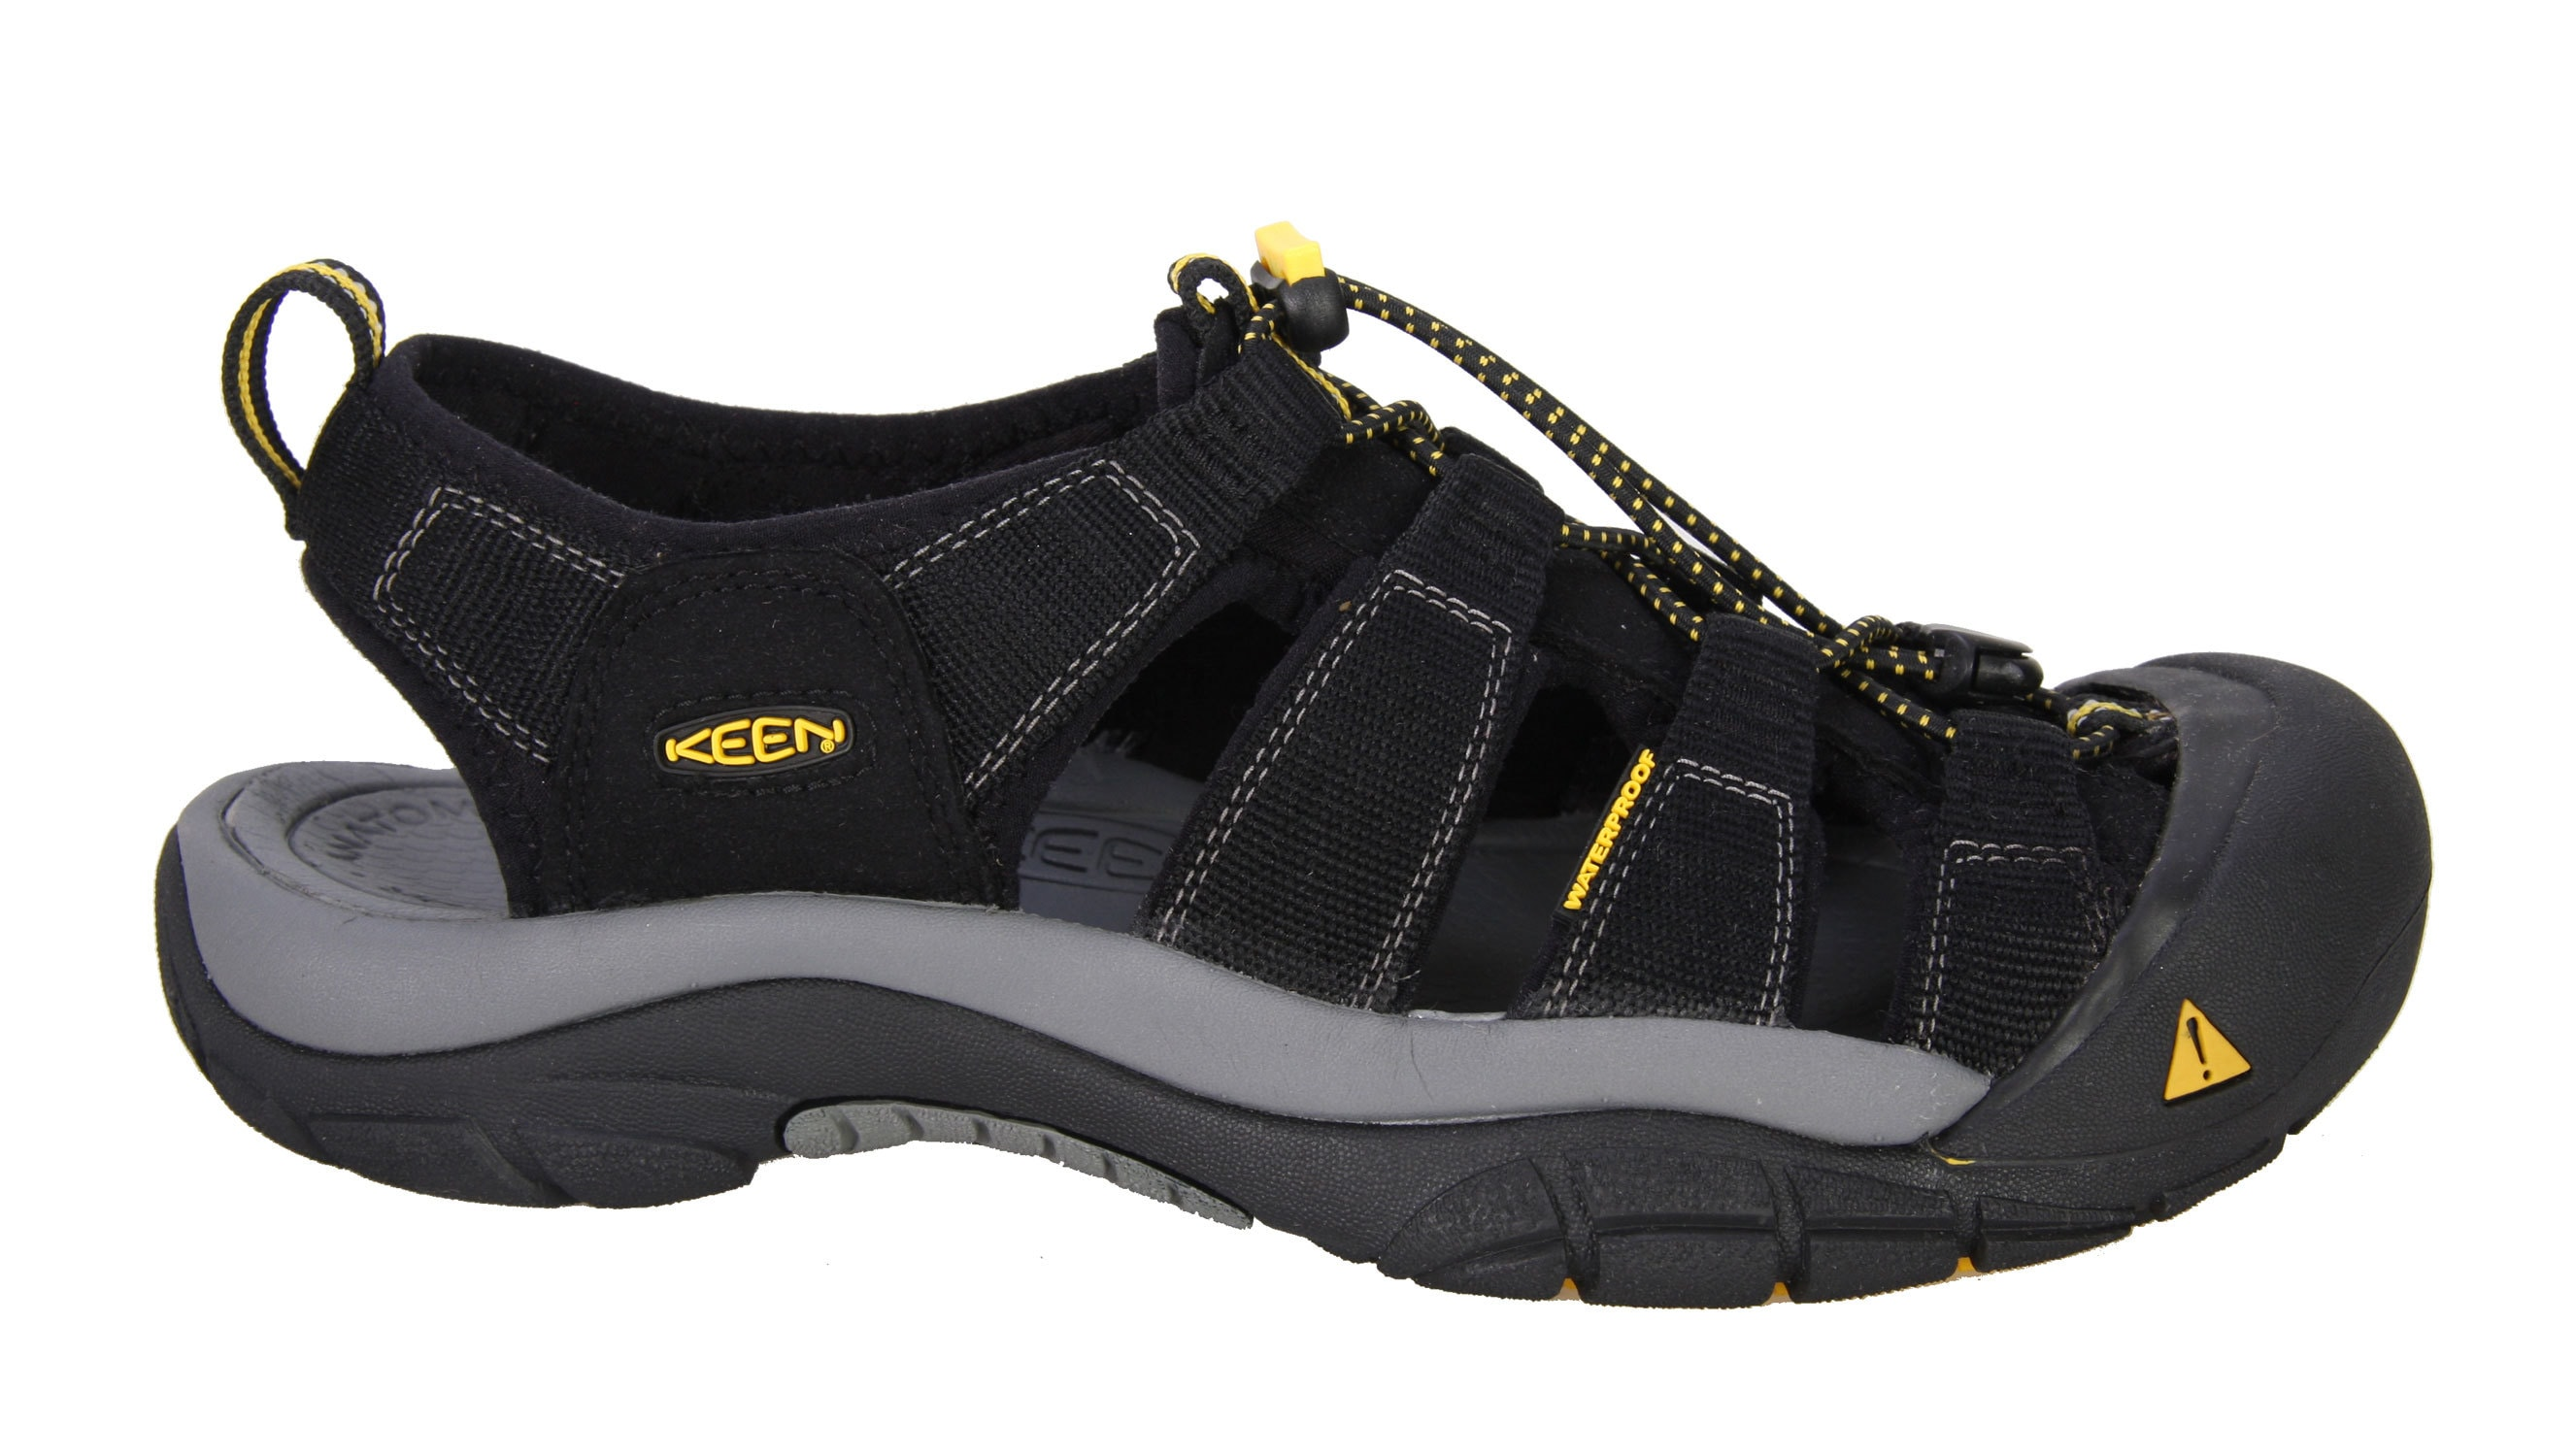 KEEN Men's Newport H2 Sandal: White Water Rafting